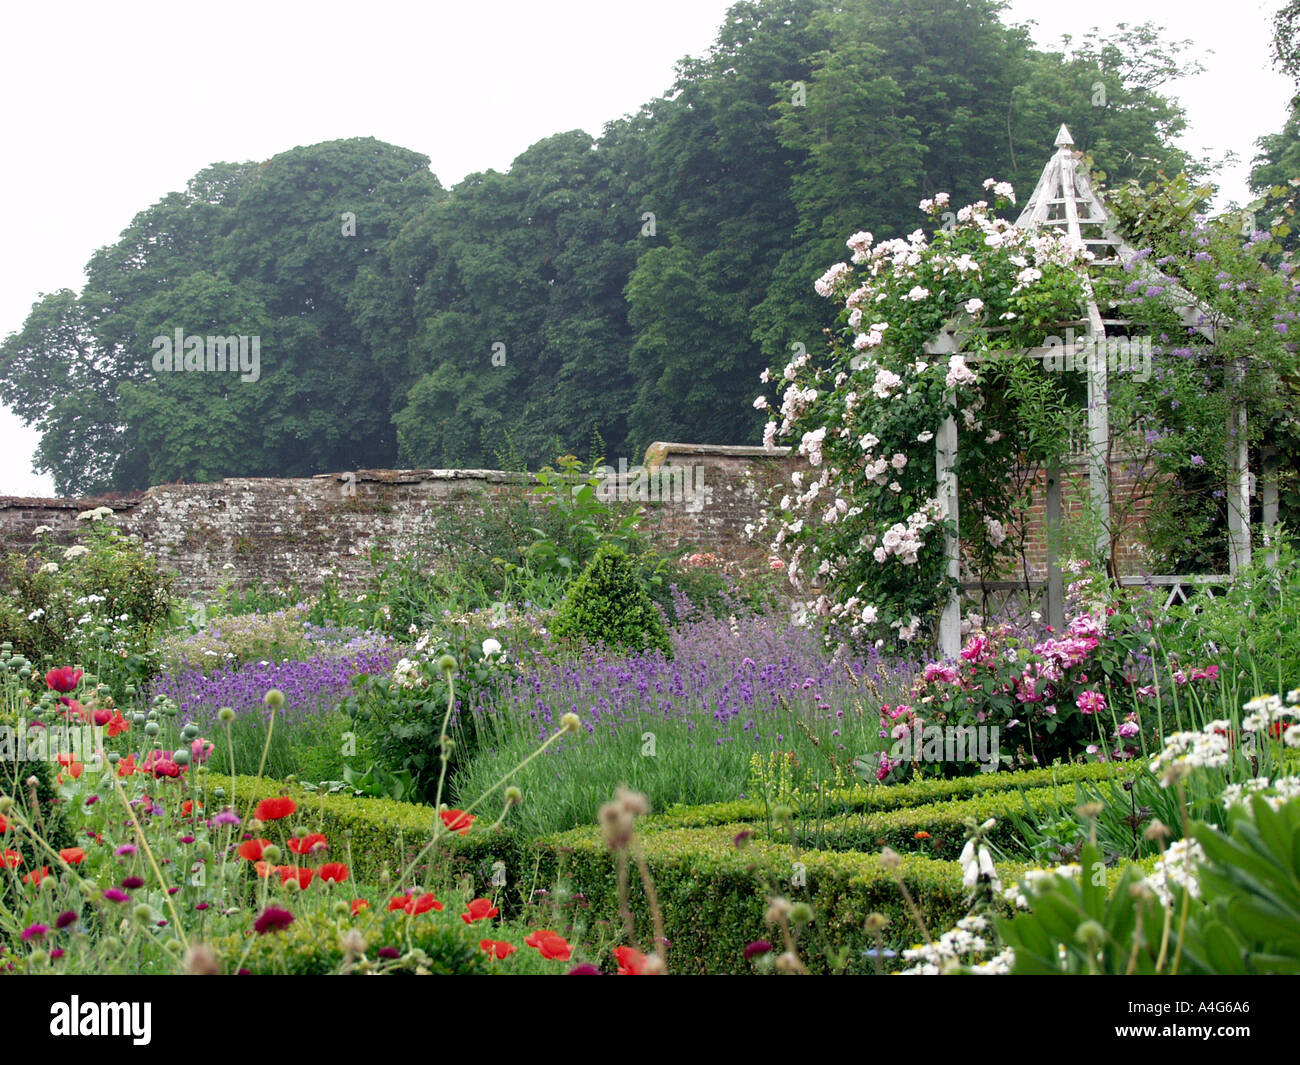 Walled Kitchen Gardens Beautiful Herb And Flower Garden In Old Walled Kitchen Garden With